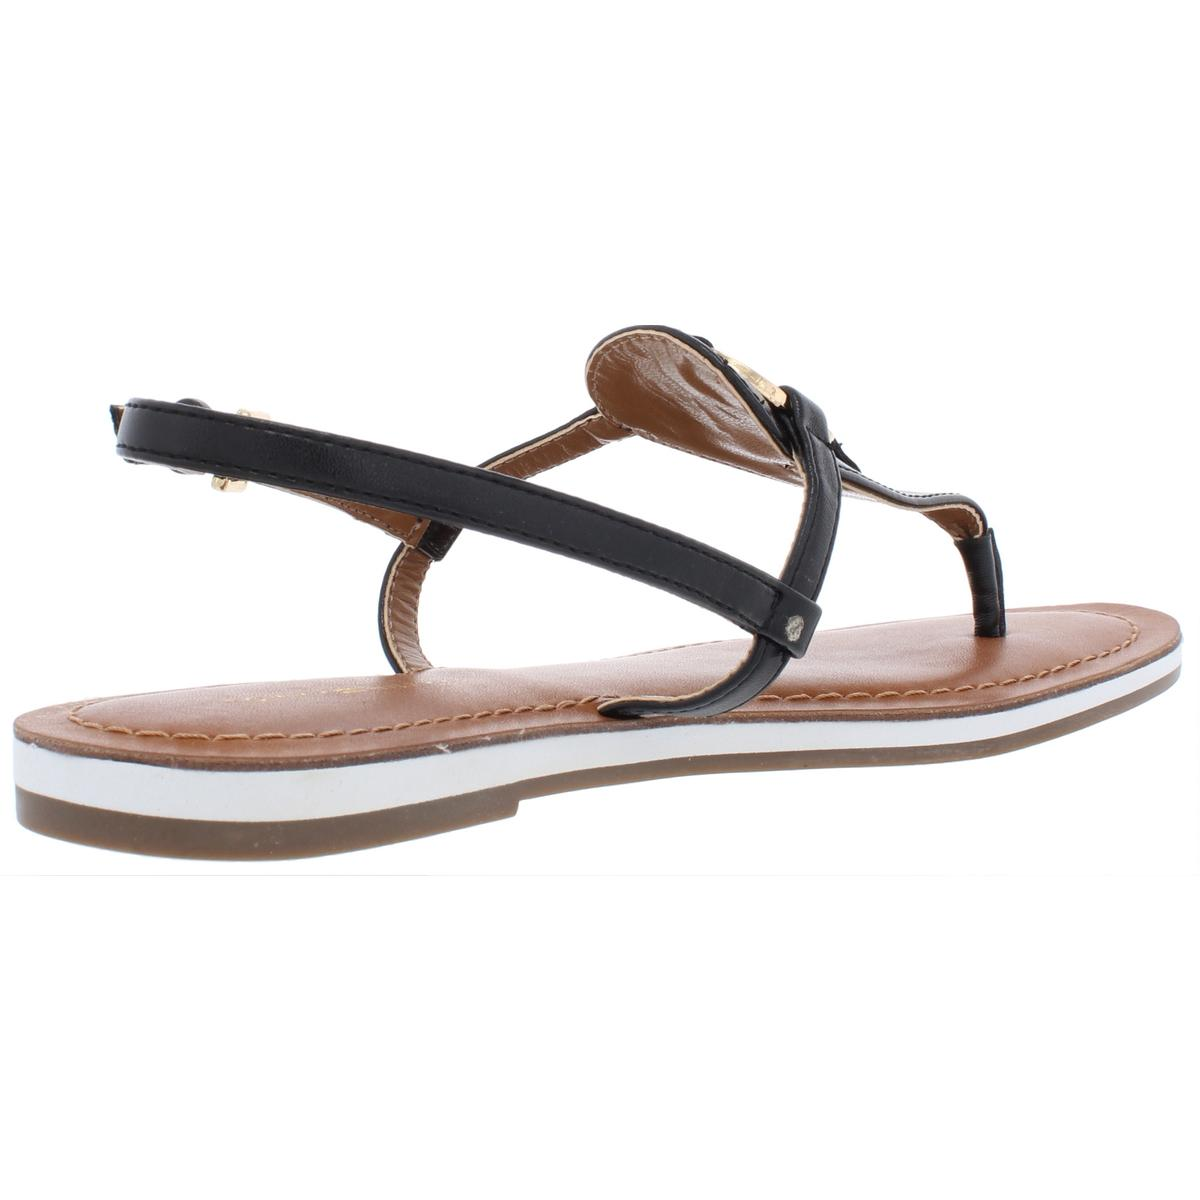 Tommy-Hilfiger-Womens-Genei-Metallic-T-Strap-Thong-Sandals-Shoes-BHFO-7834 thumbnail 4